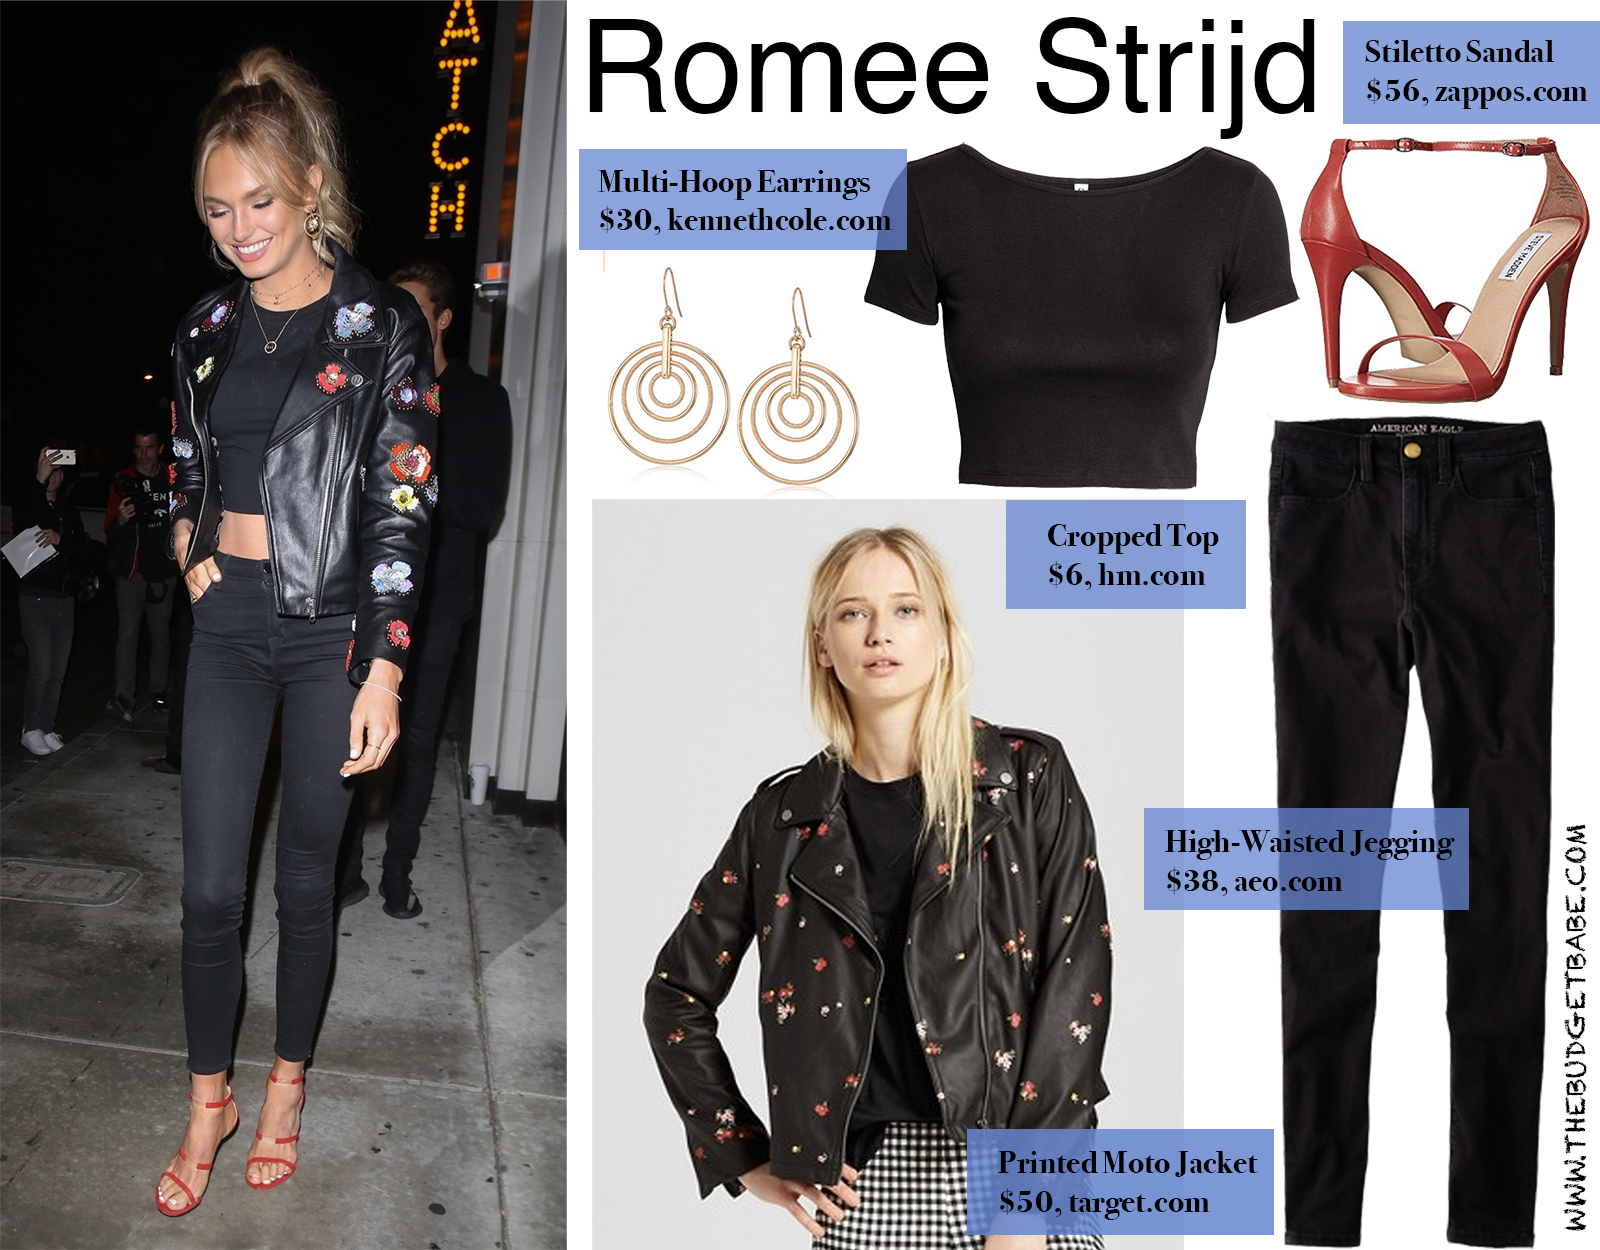 Romee Strijd Floral Moto Jacket and Bright Stiletto Sandals For Less